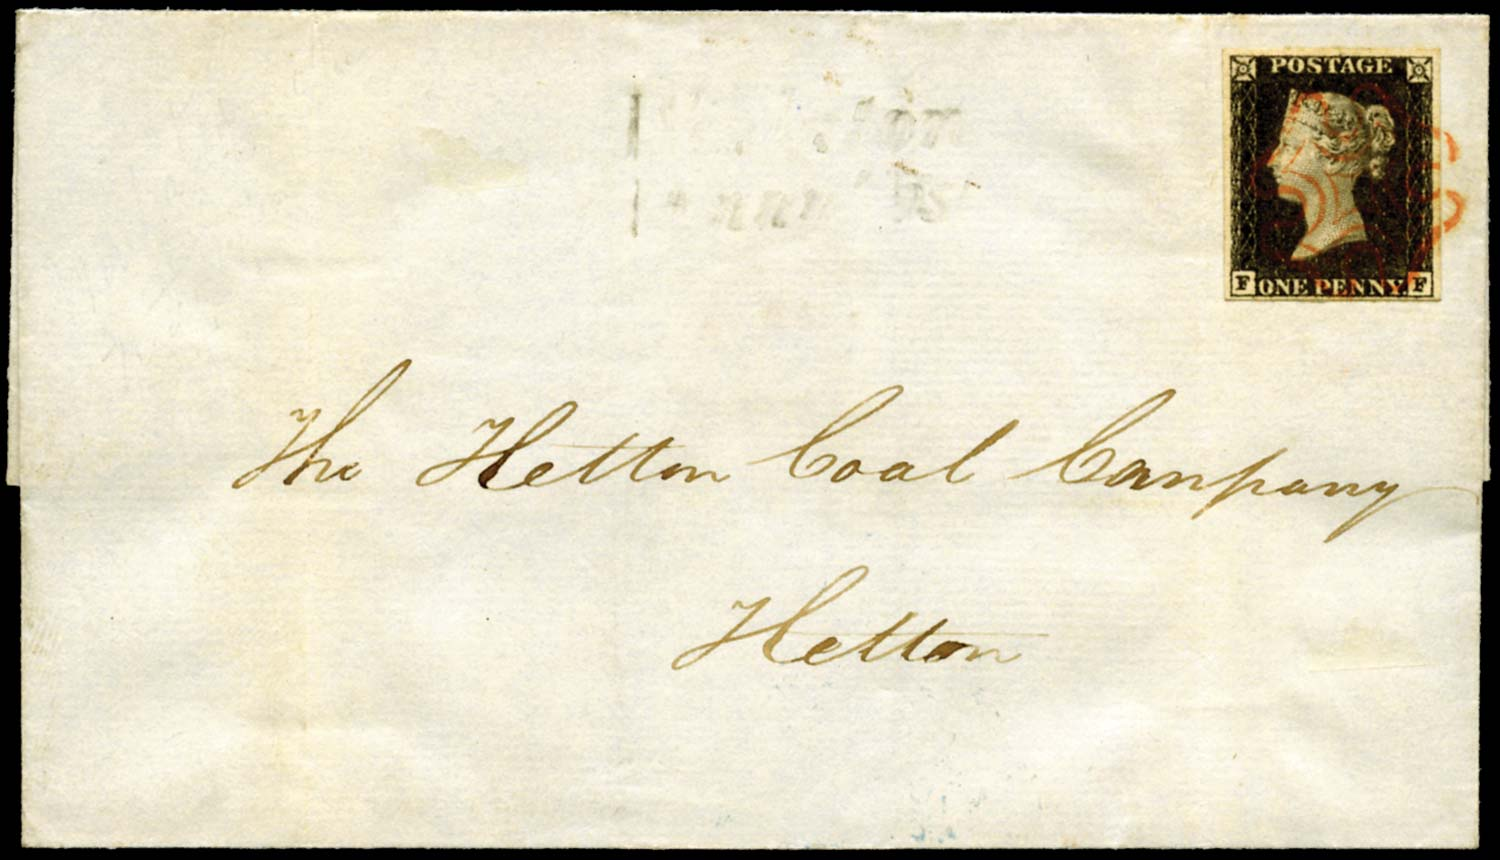 GB 1840  SG1 Pl.1 Cover - May 14th